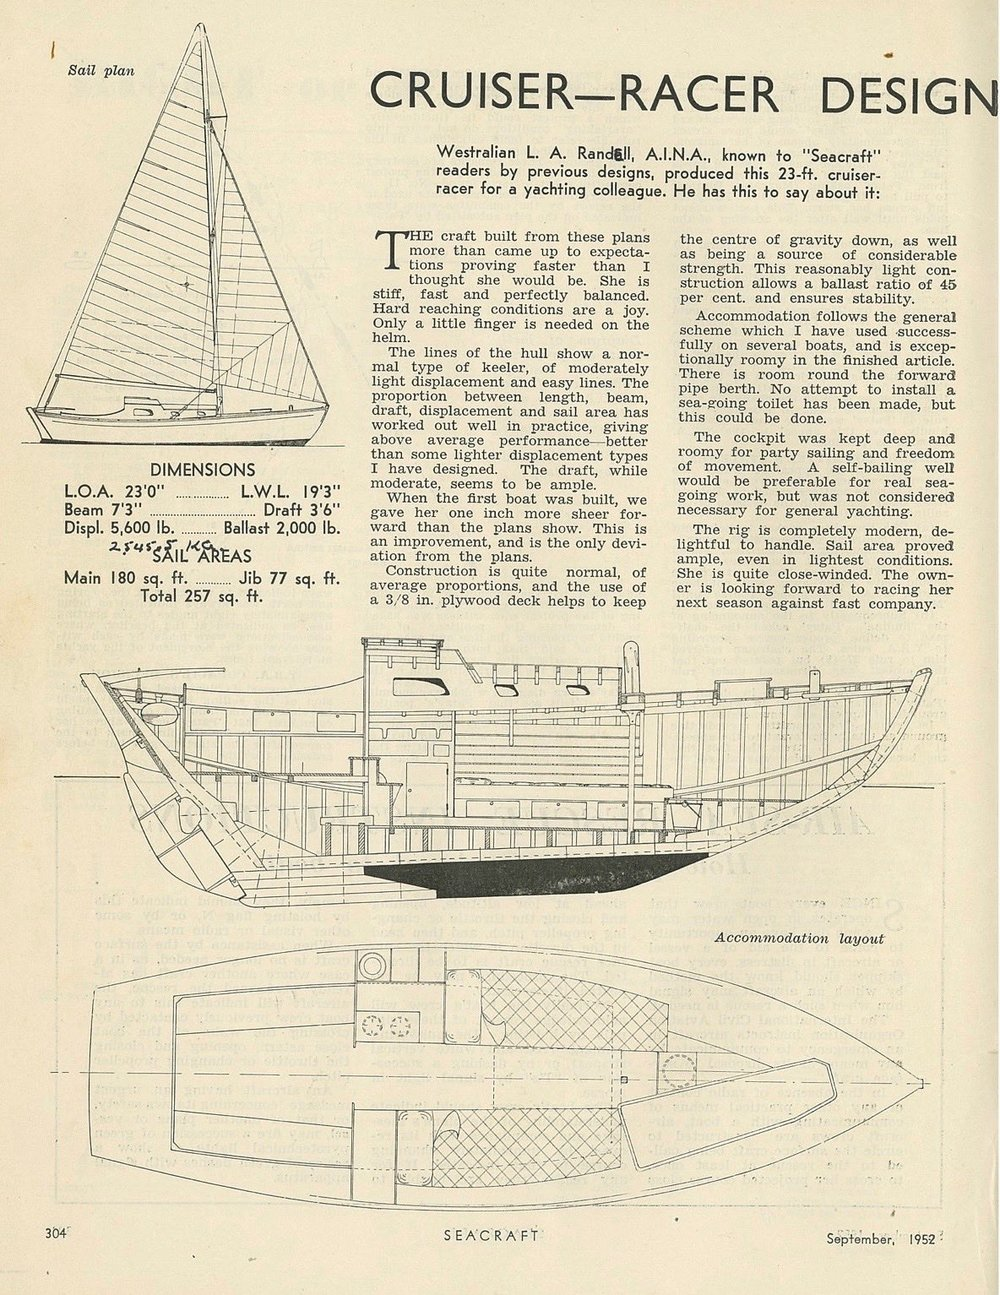 The 1952 Seacraft magazine review of Len Randell's Rugged design